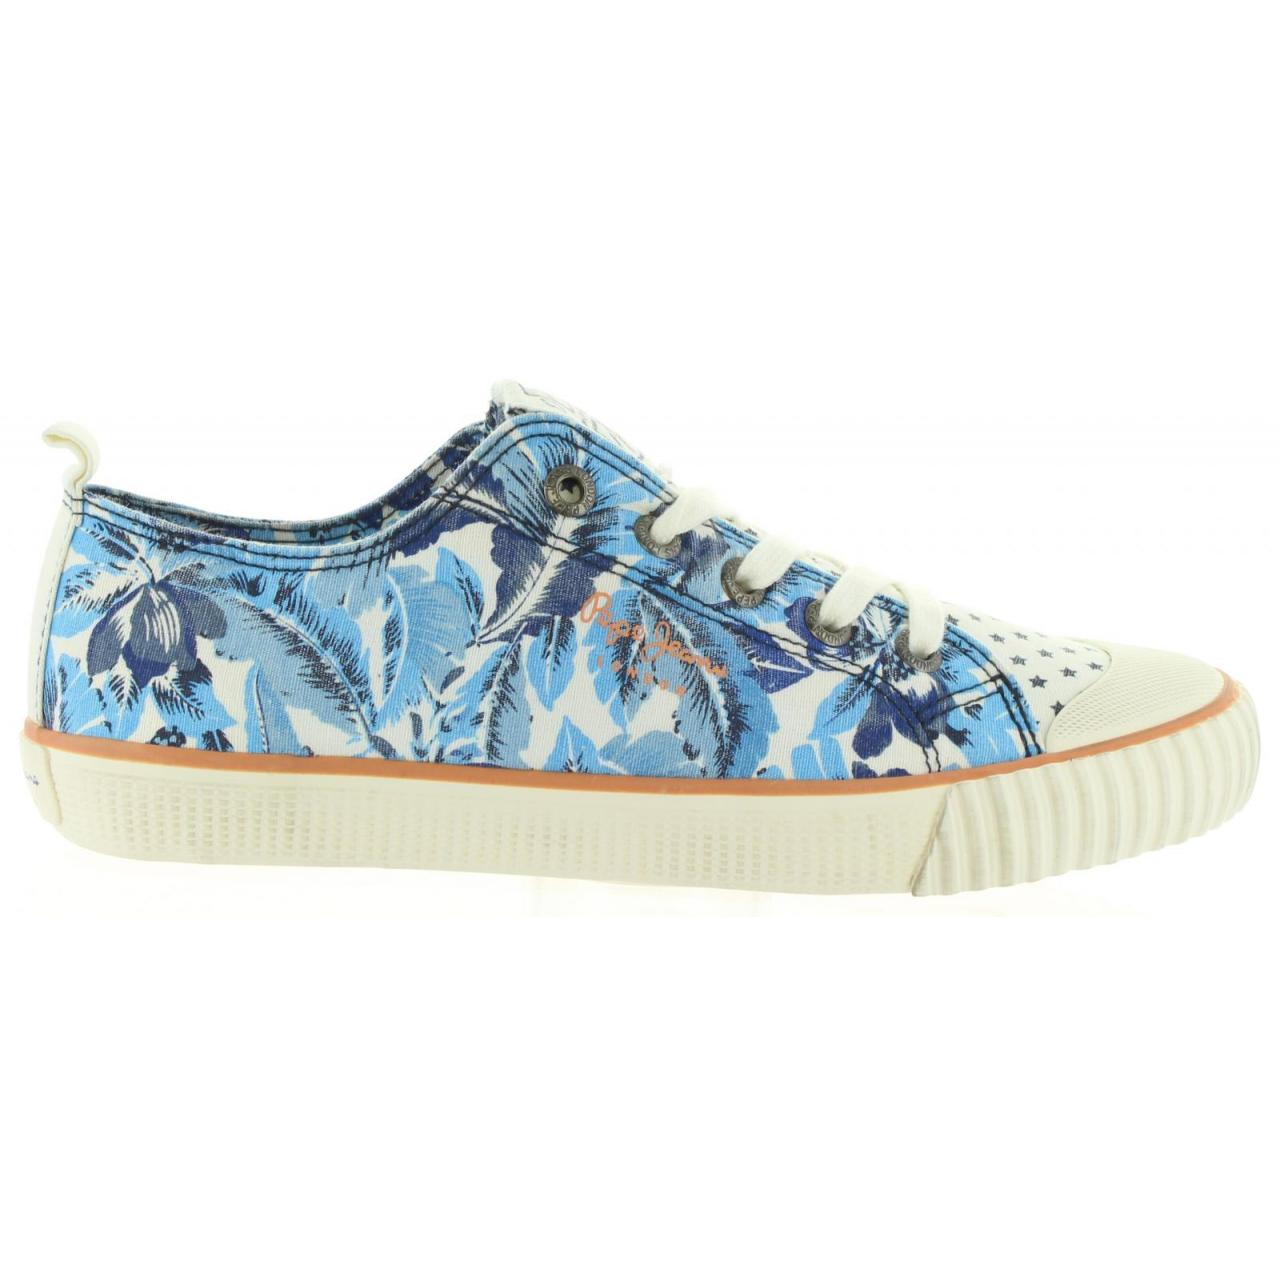 Deportivas Pepe Jeans Azul PLS30464 INDUSTRY 530 ANYL      ANYL e546ae